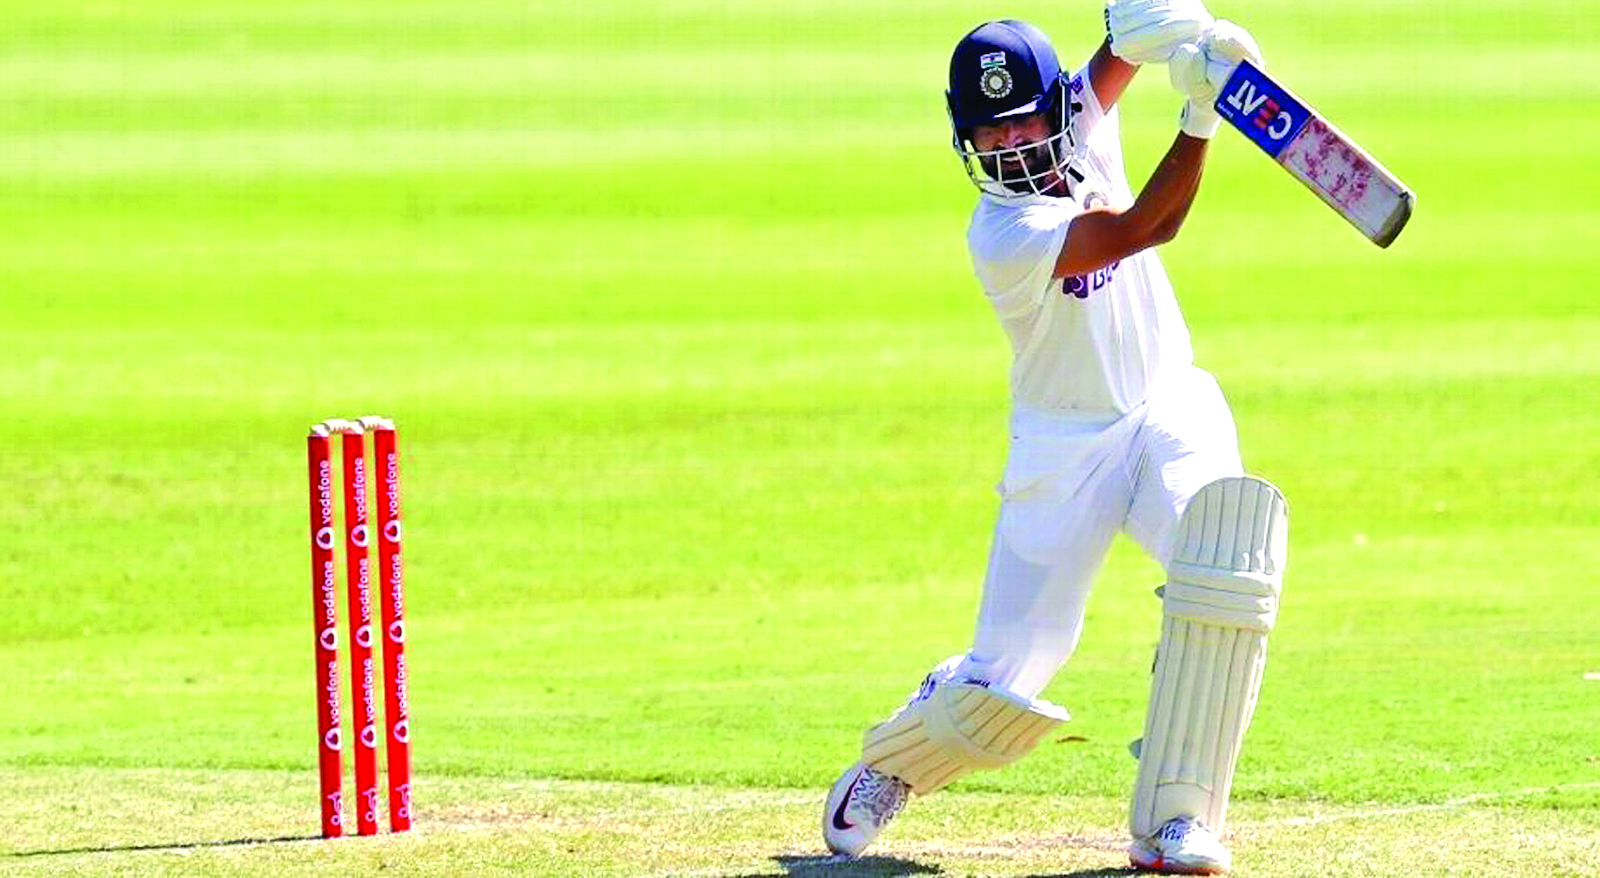 First warm-up ton-up Rahane, Pujara take India A to 237-8 against Australia A on day 1